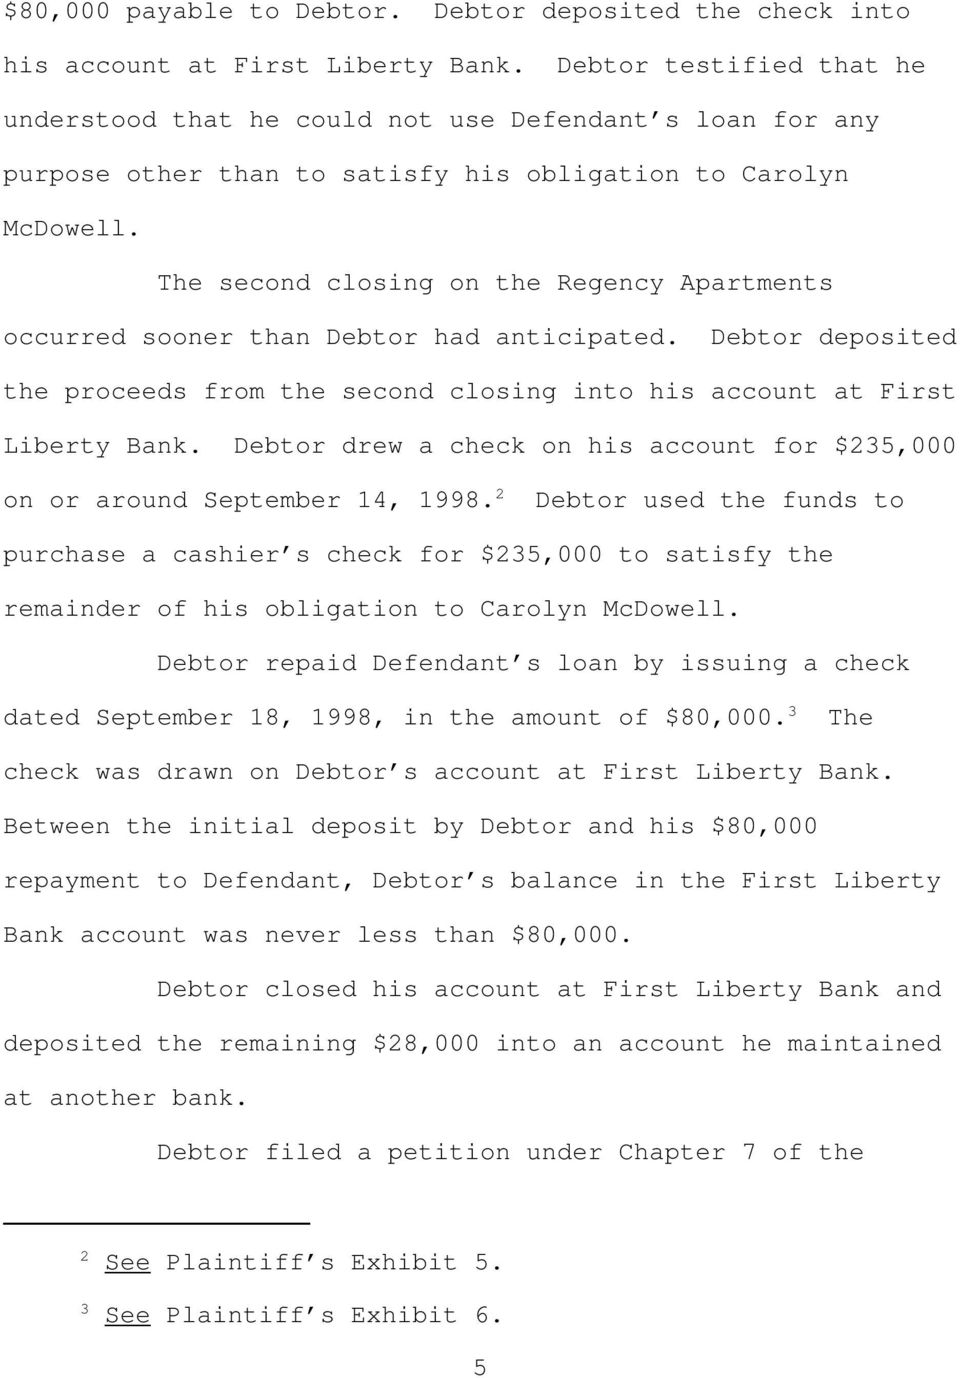 The second closing on the Regency Apartments occurred sooner than Debtor had anticipated. Debtor deposited the proceeds from the second closing into his account at First Liberty Bank.